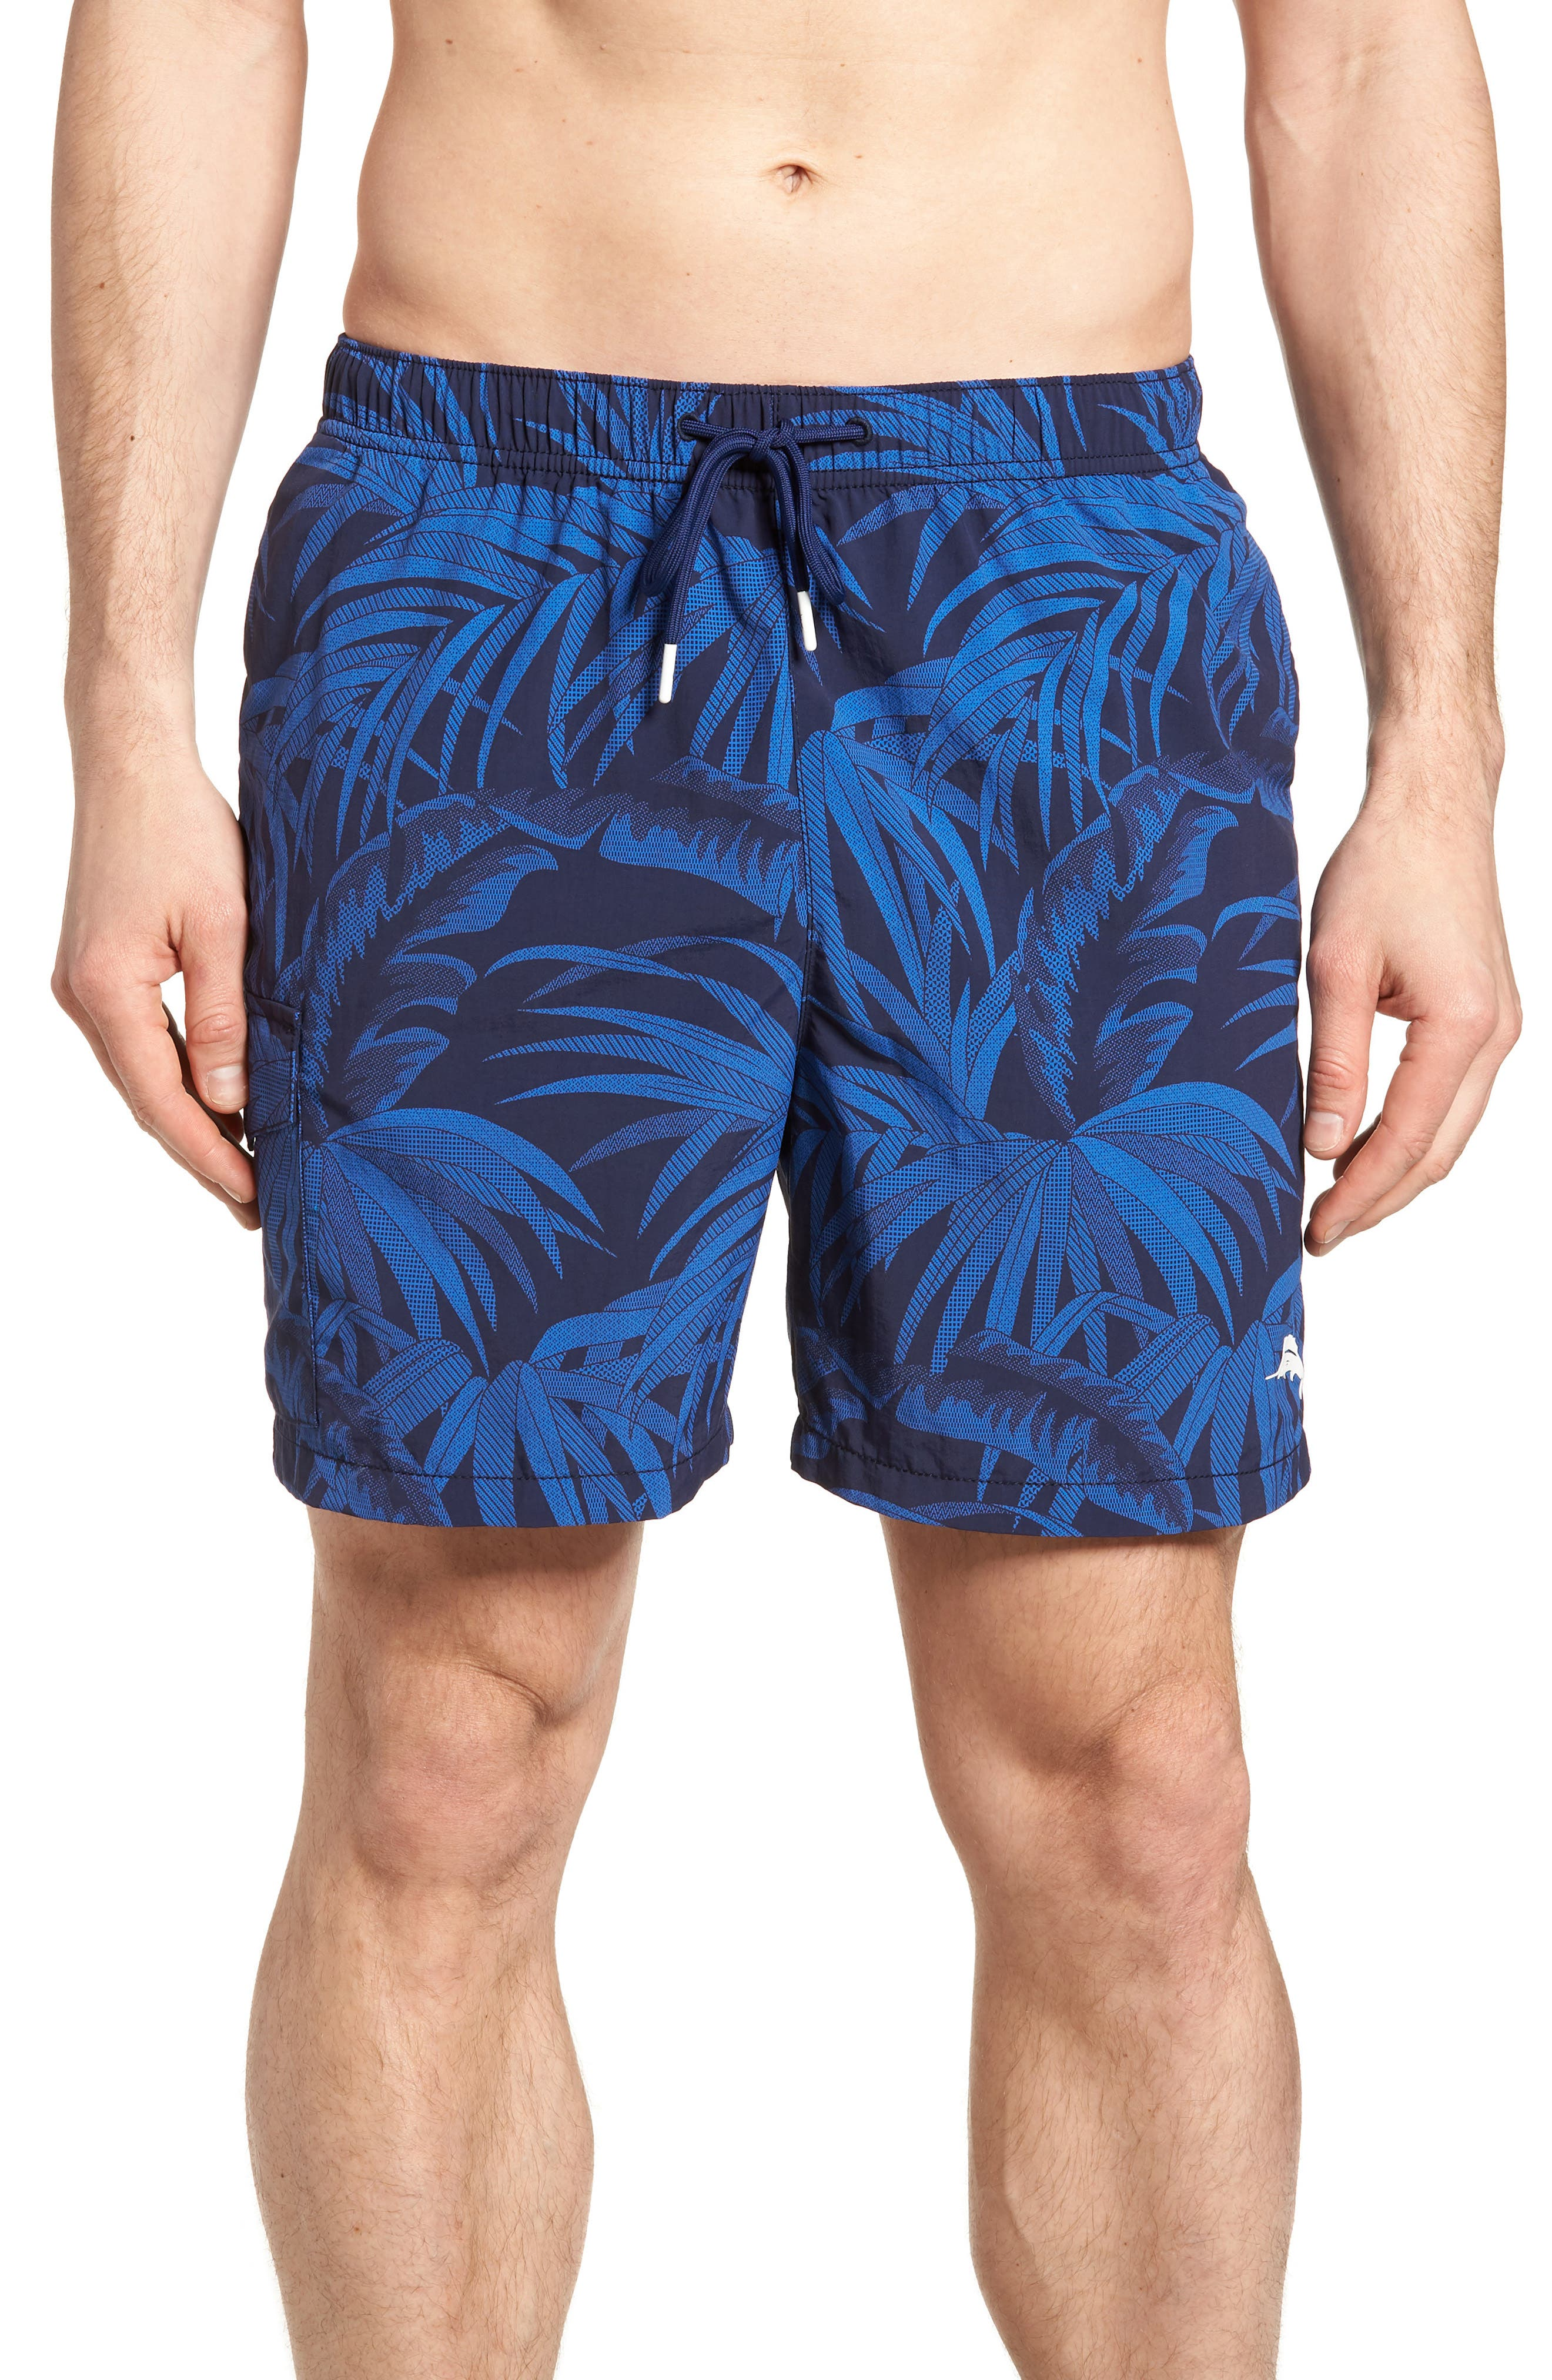 Naples Midnight Flora Swim Trunks,                             Main thumbnail 1, color,                             400